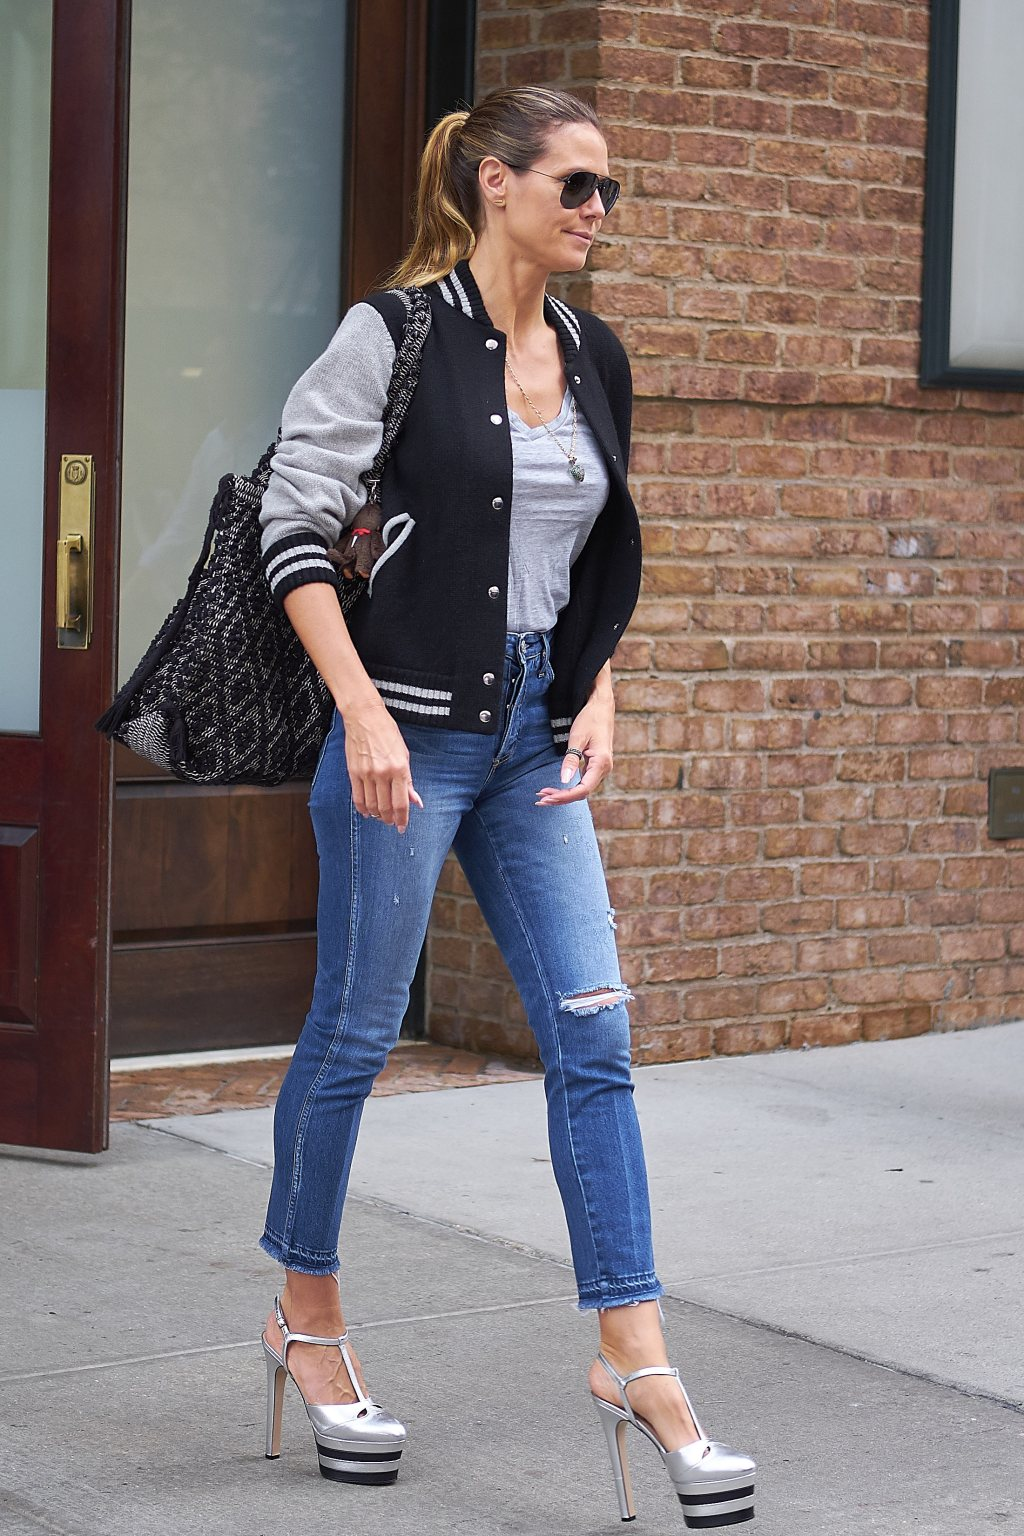 Heidi Klum seen wearing a varsity jacket and heels while out and about in NYC